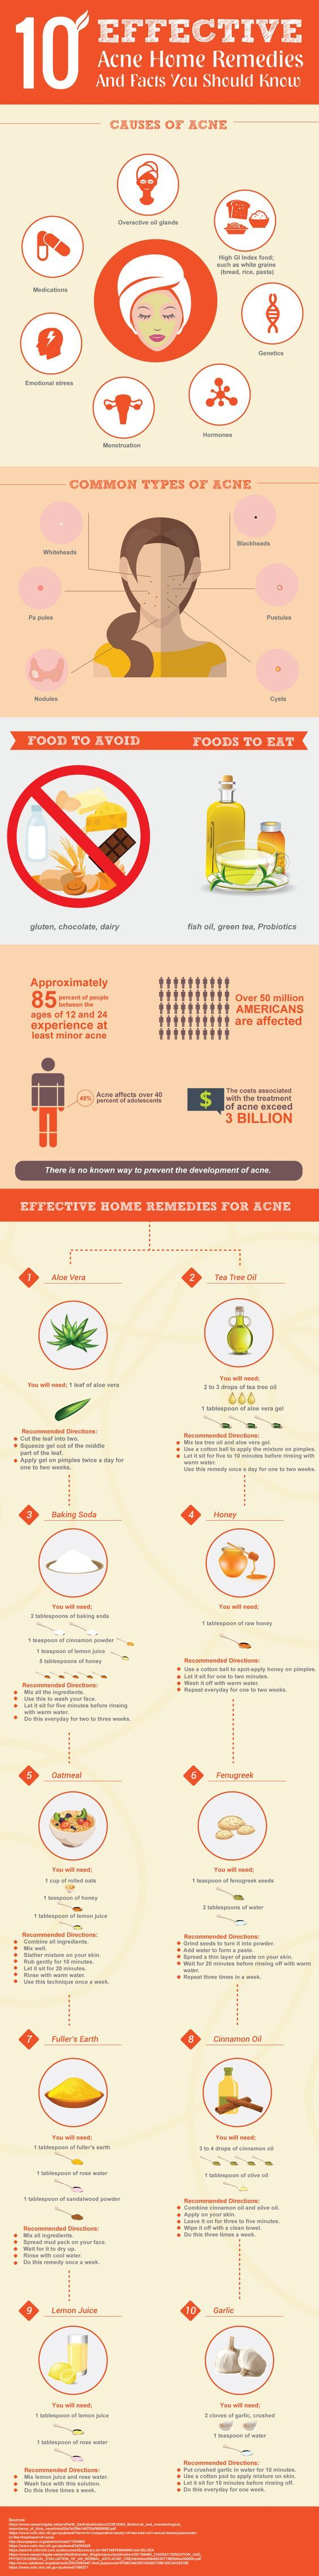 Acne can be frustration. For most cases you can get rid of them using simple home remedies. Here you will find some effective remedies to try. *** Check out the article by clicking the image link.